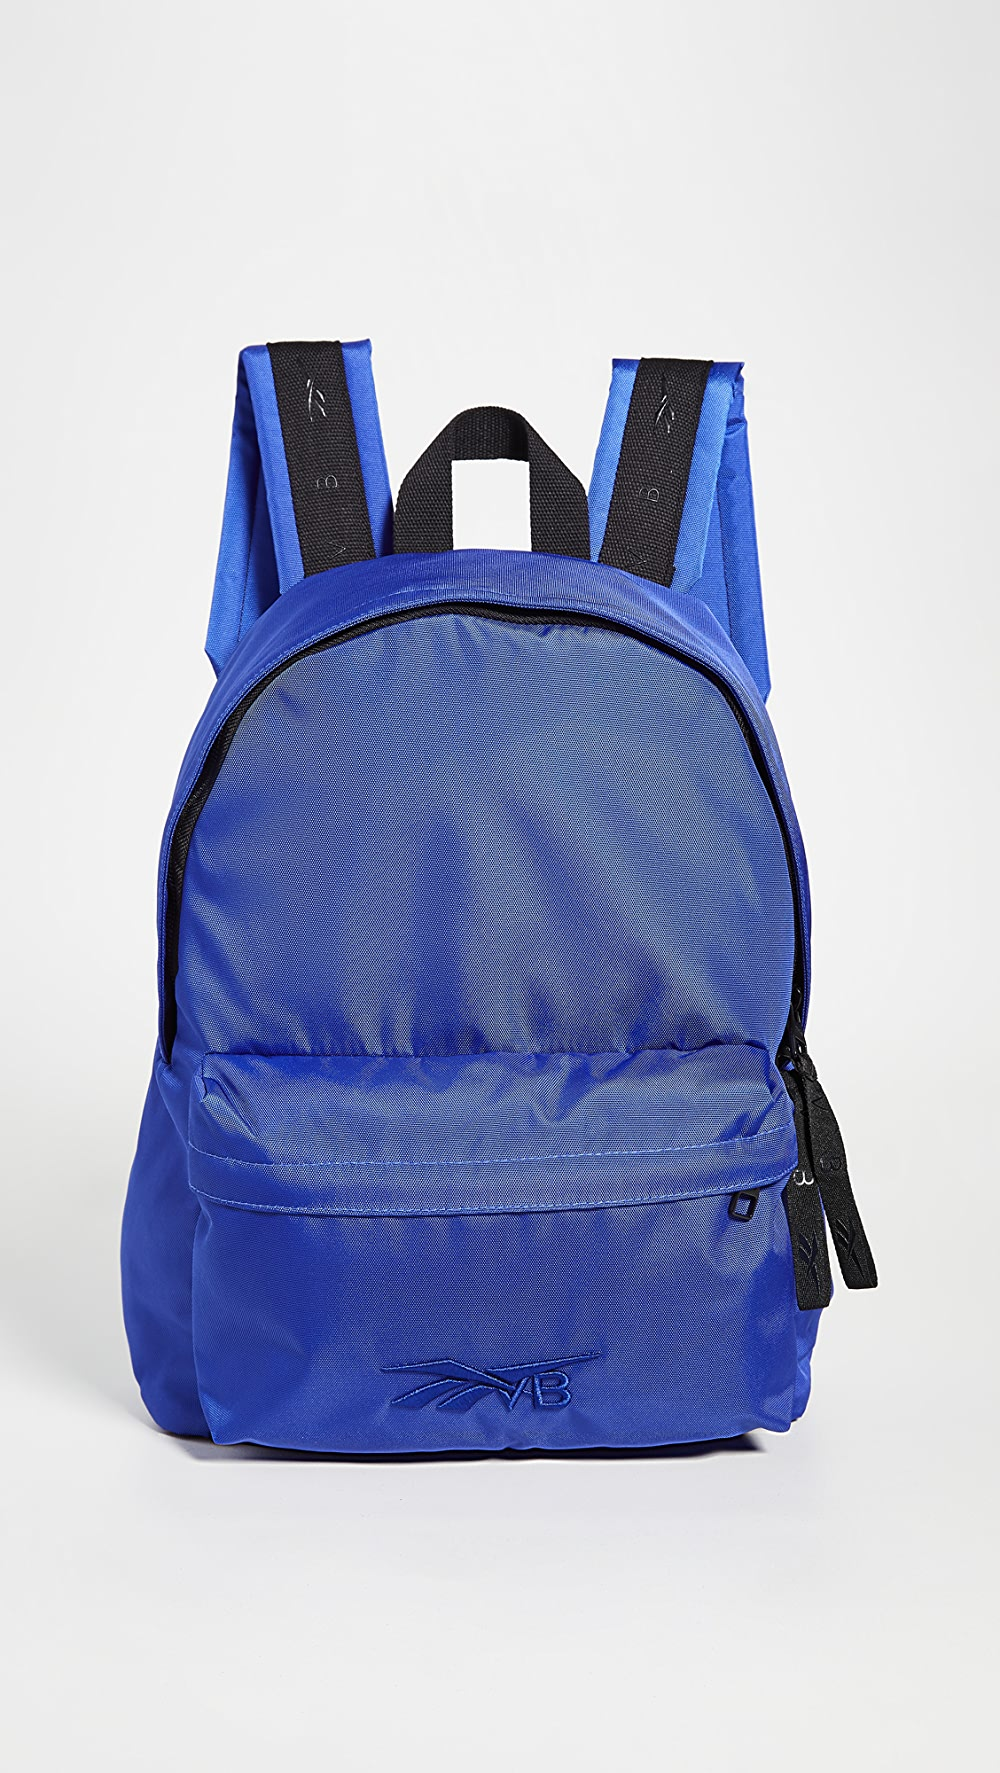 Gentle Reebok X Victoria Beckham - Rbk Vb Backpack Making Things Convenient For The People